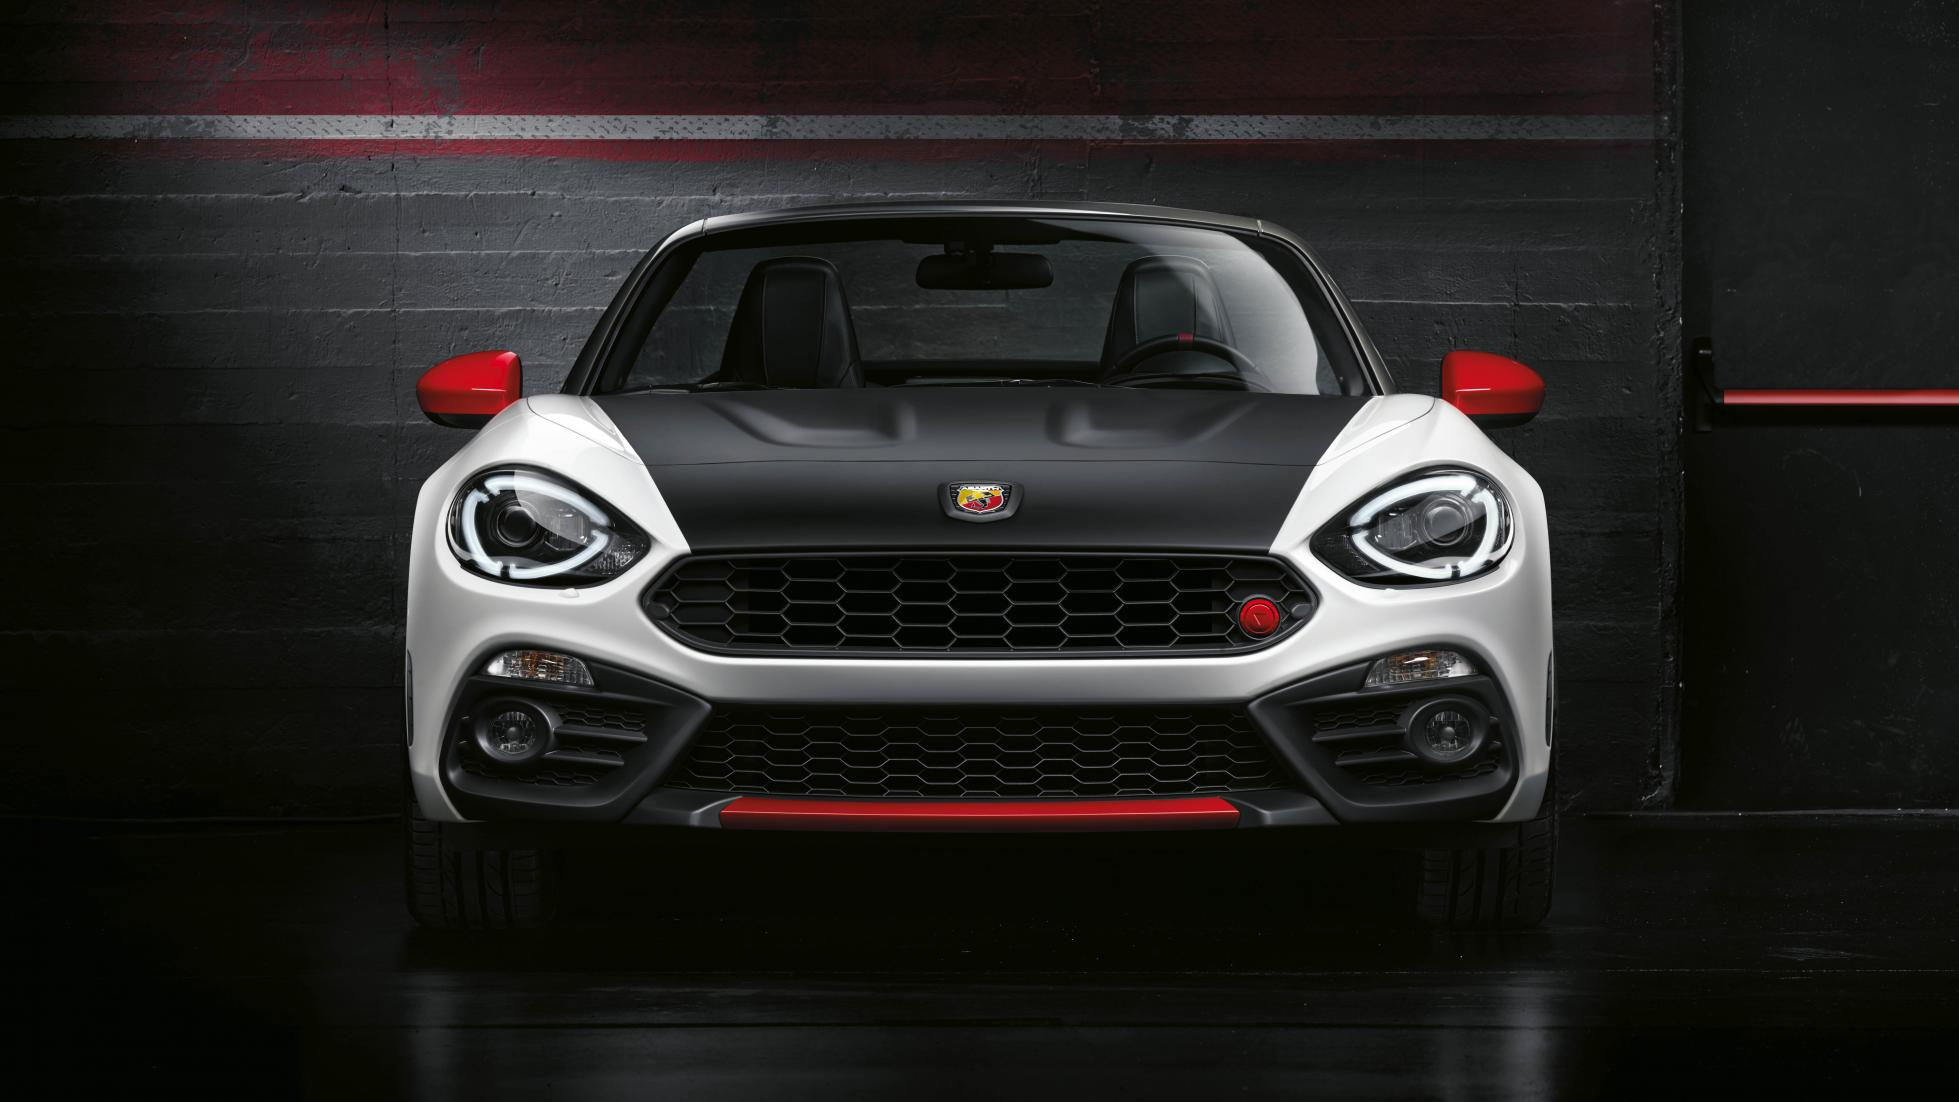 fiat abarth 124 spider wallpaper hd full hd pictures. Black Bedroom Furniture Sets. Home Design Ideas